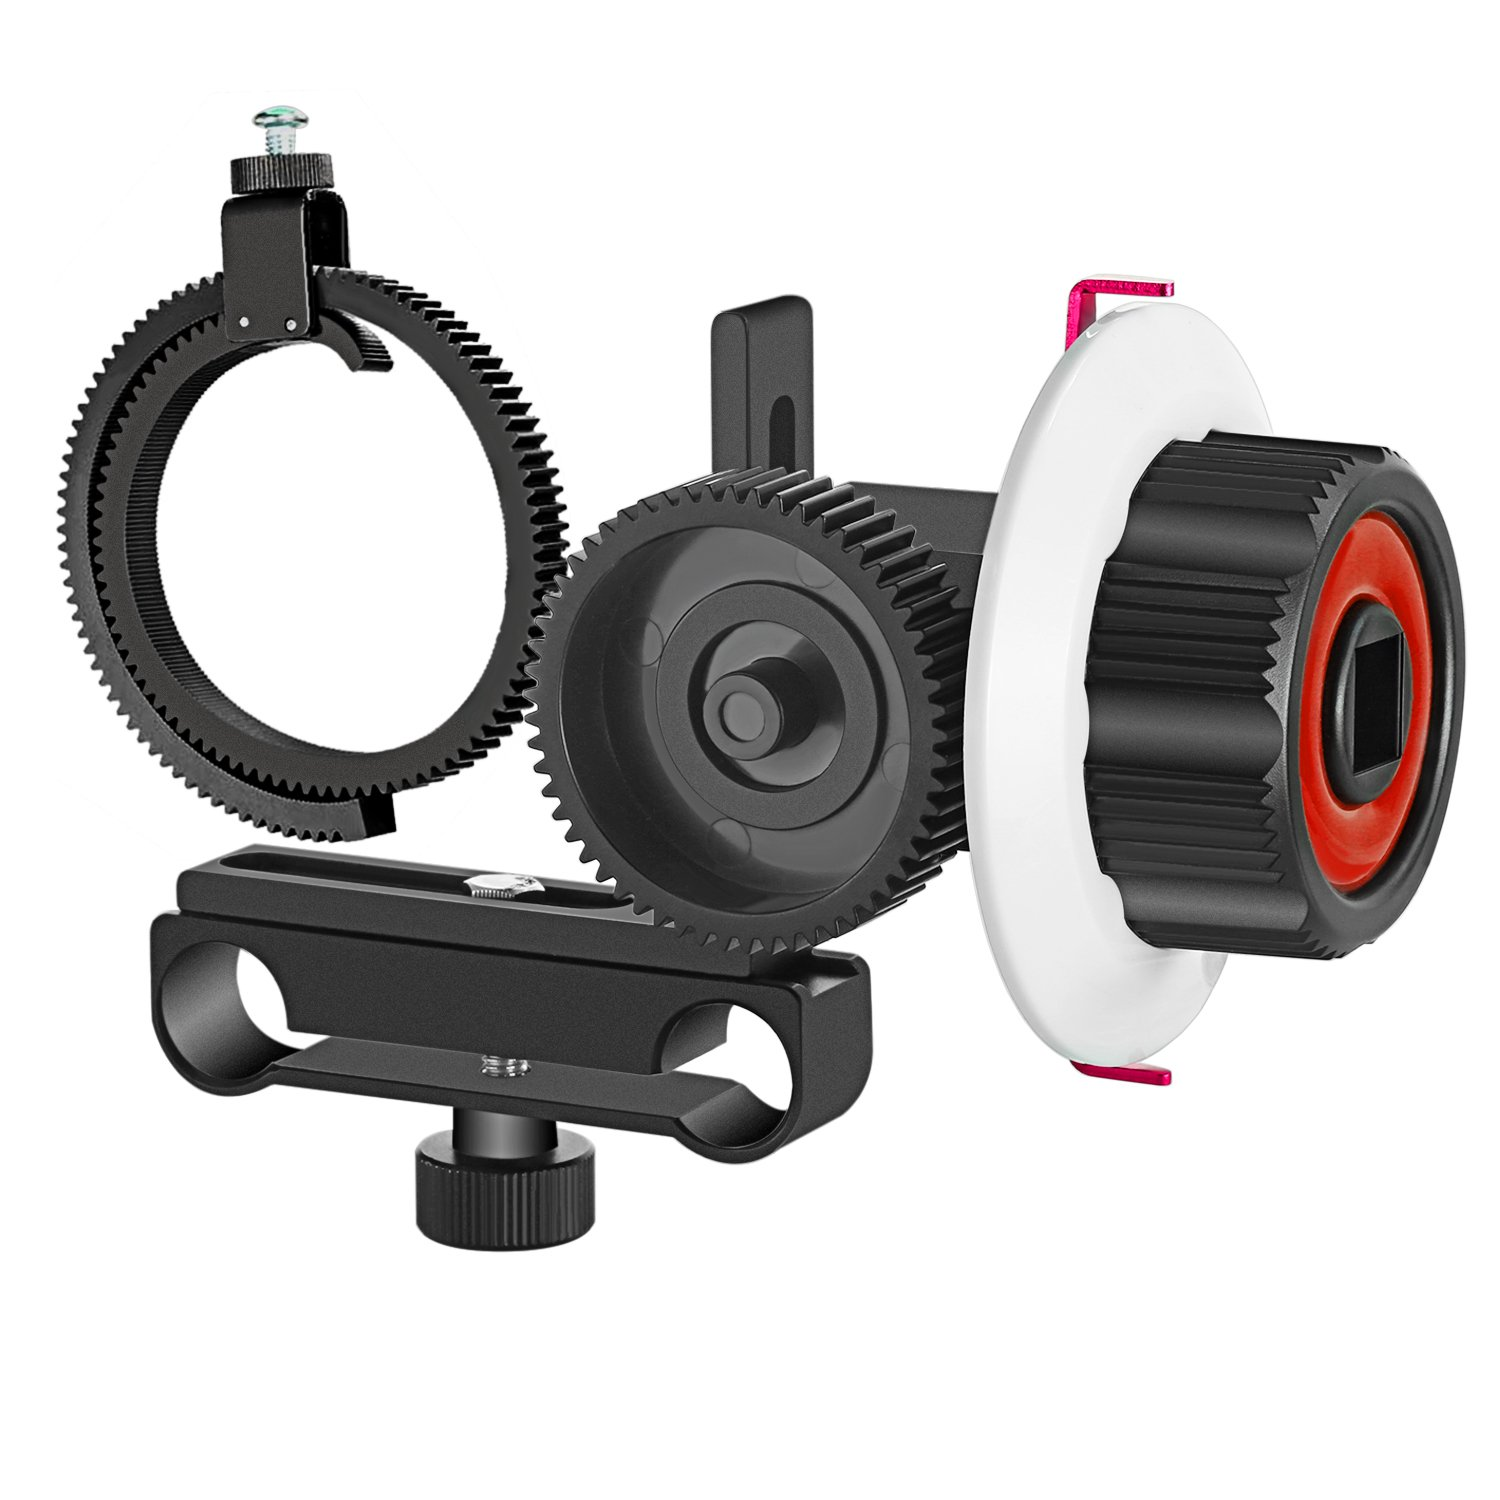 Neewer Follow Focus With Gear Ring Belt For Canon Nik